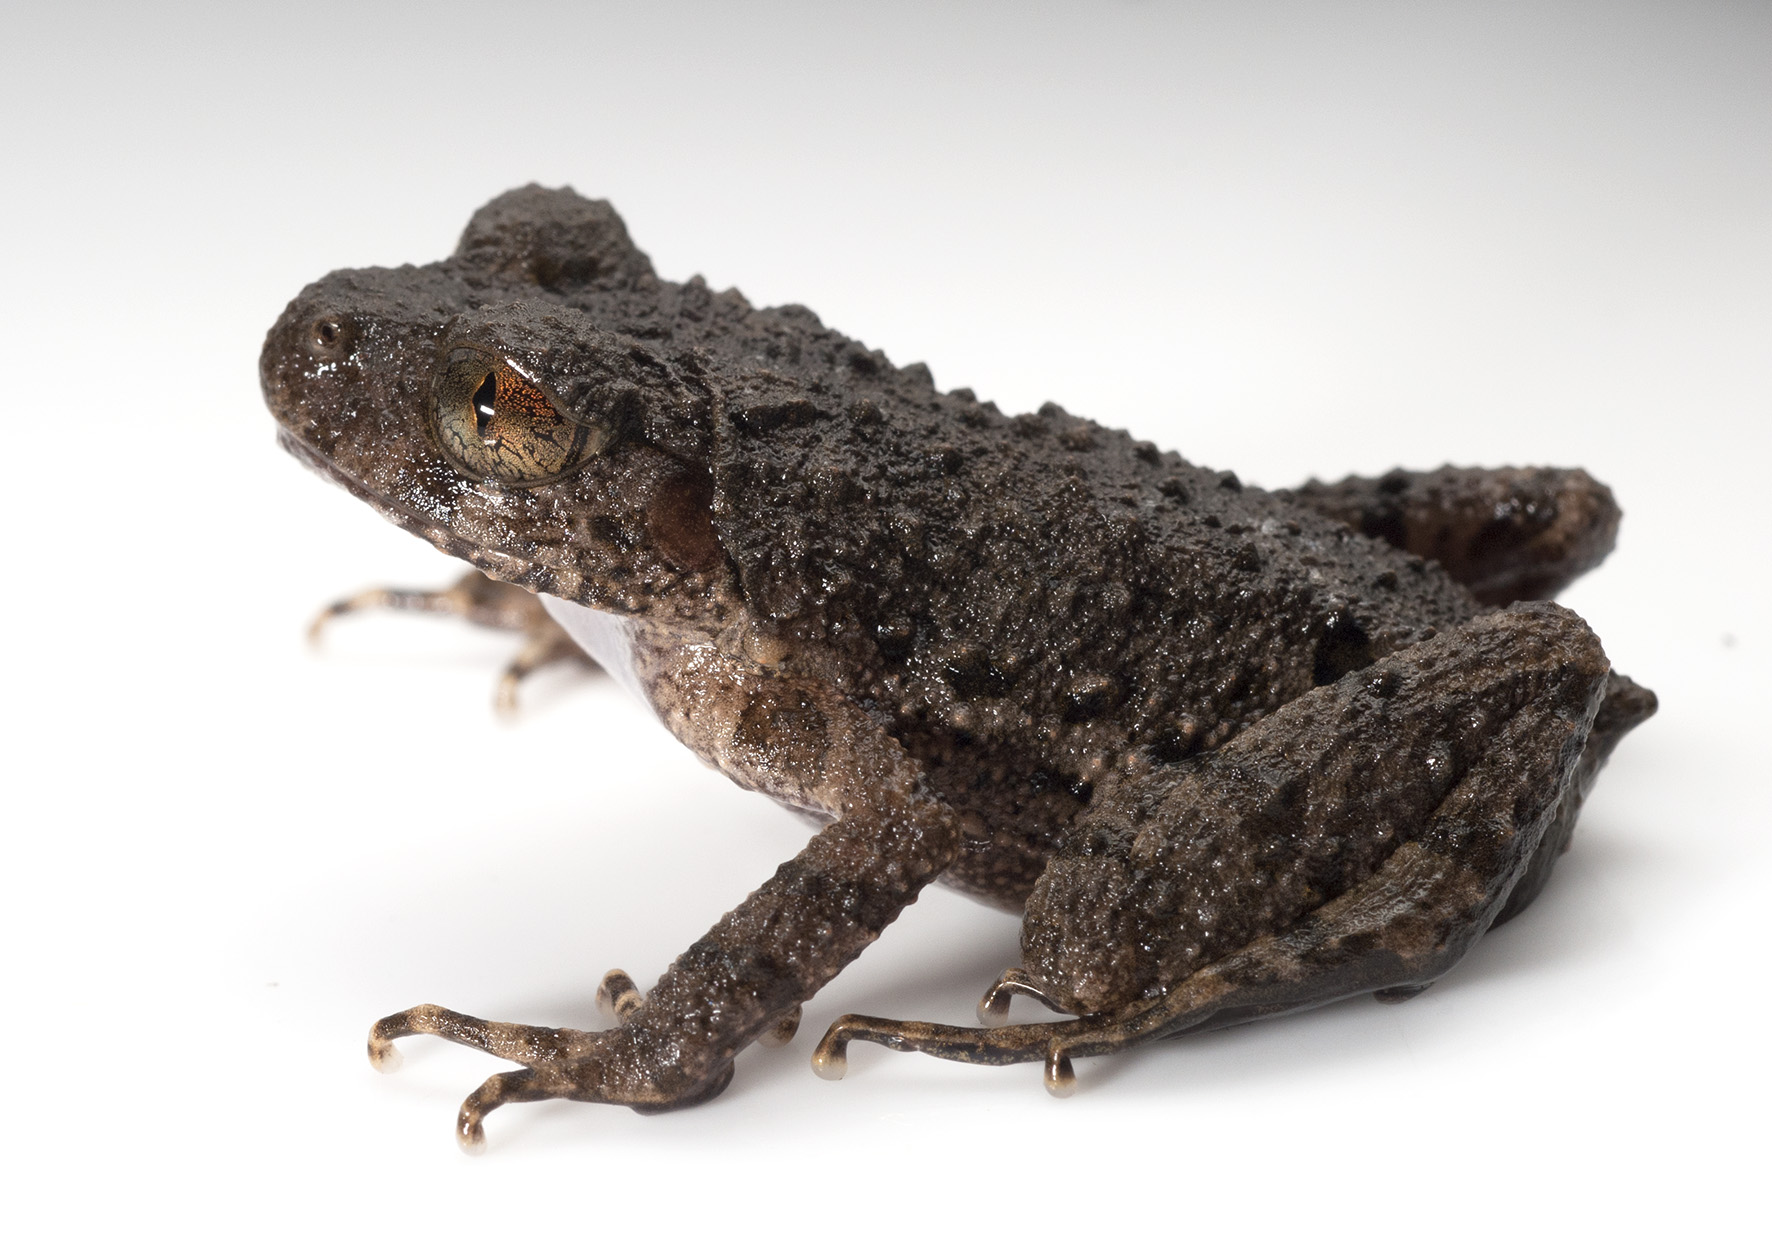 New frog species looks like a small piece of rock